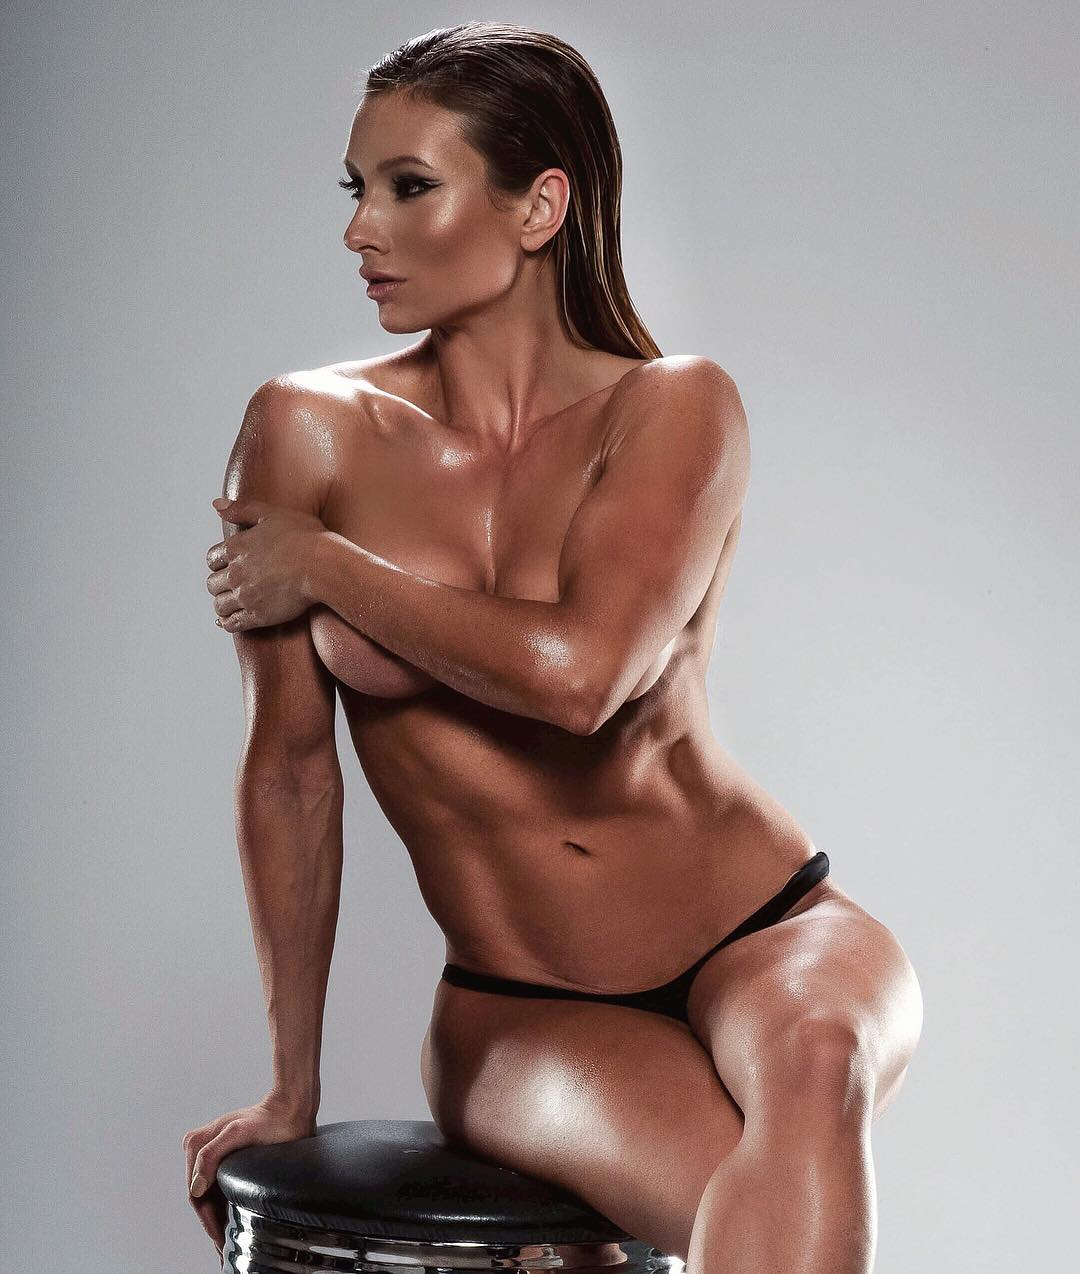 Paige Hathaway nudes (94 photo), video Fappening, YouTube, butt 2020